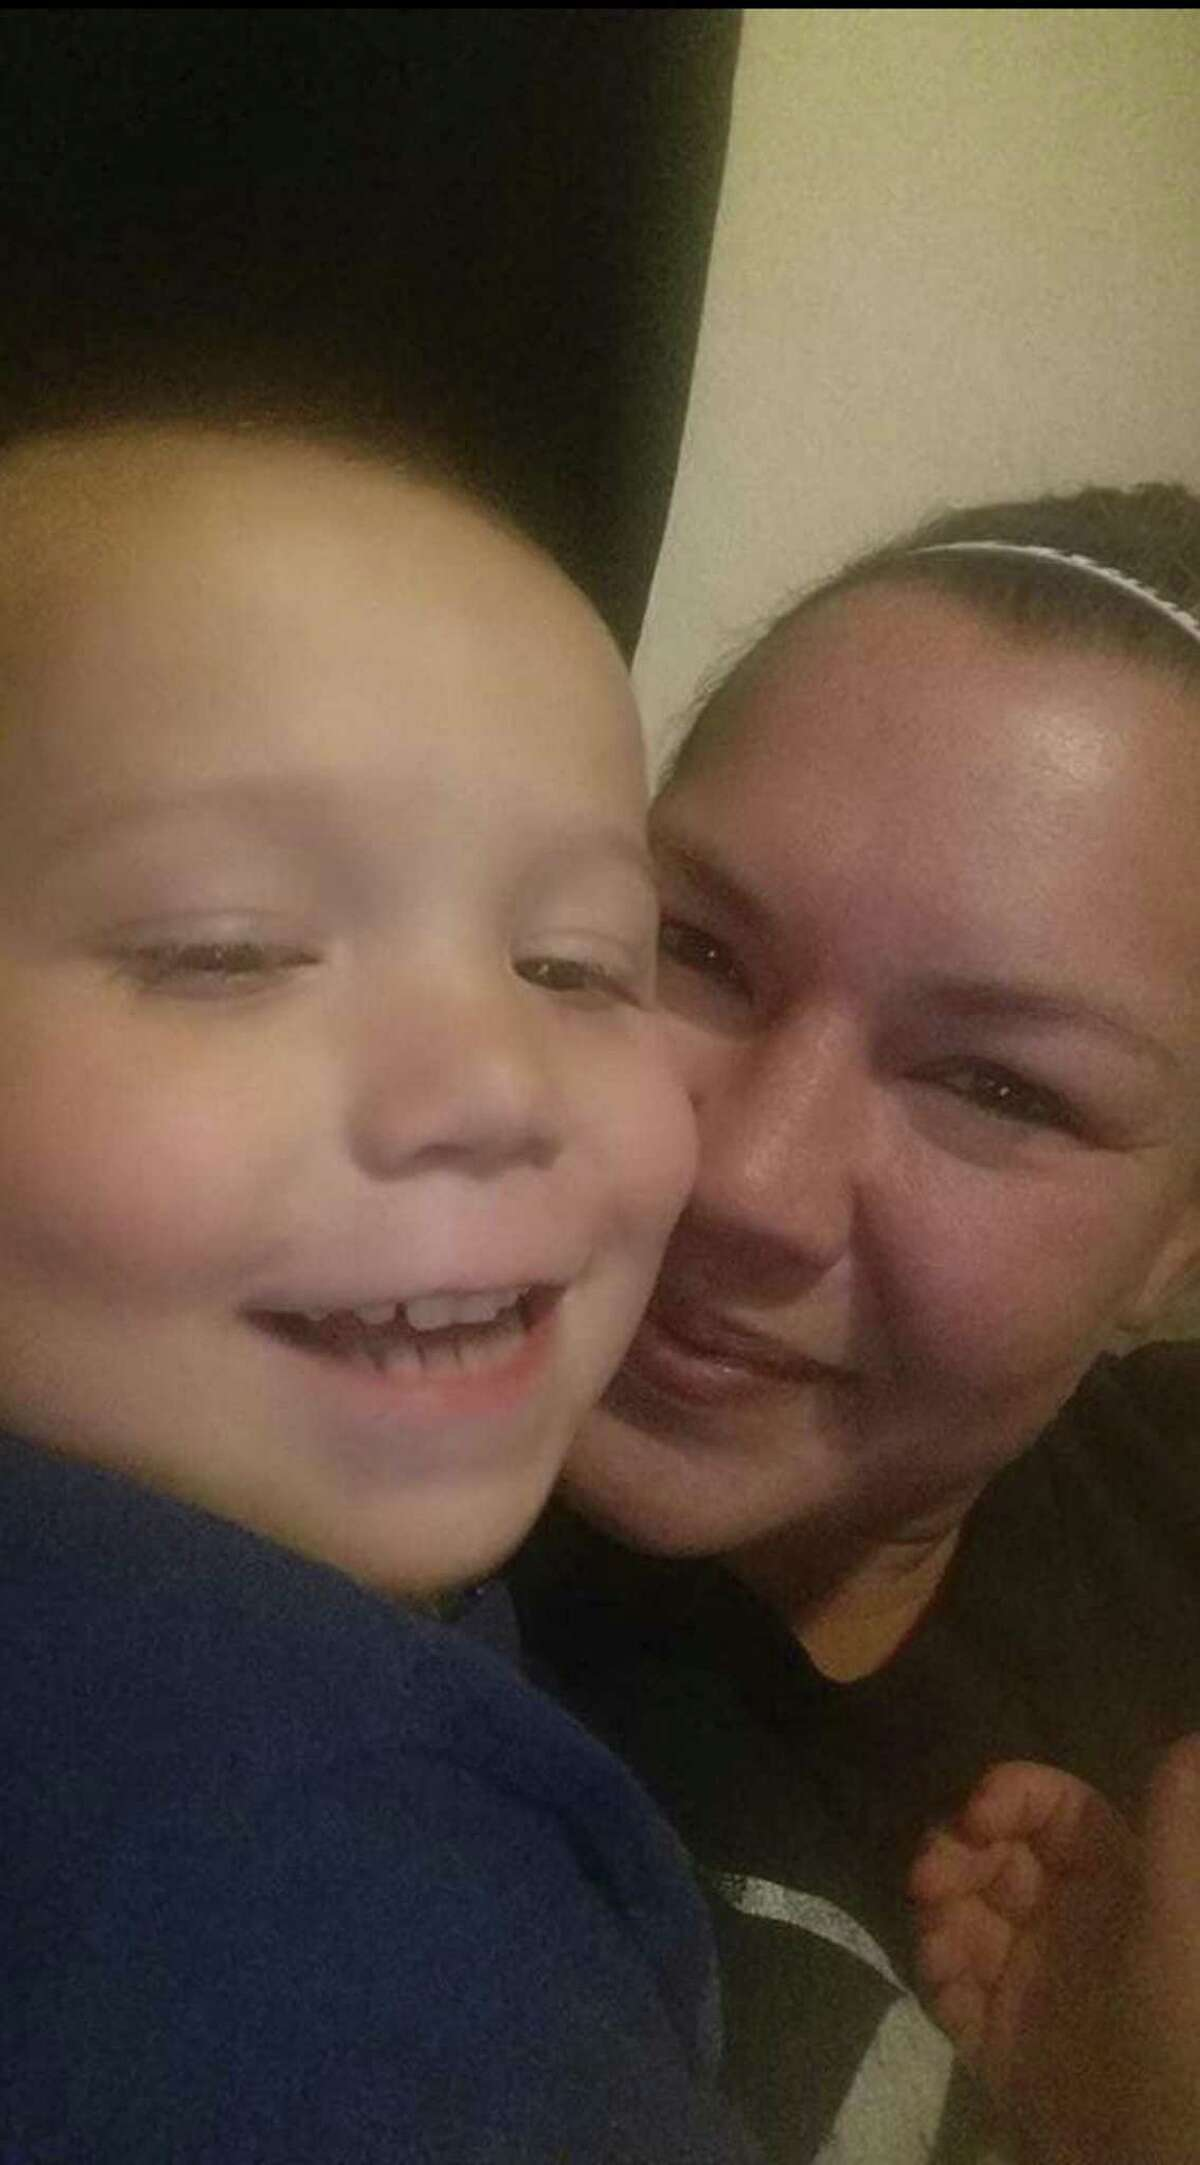 Joann Ward and her son, Ryland Ward. The little boy, who was shot five times in the Sutherland Springs church massacre turned 6 during his hospital stay. He was released from the hospital Jan. 11, 2018.